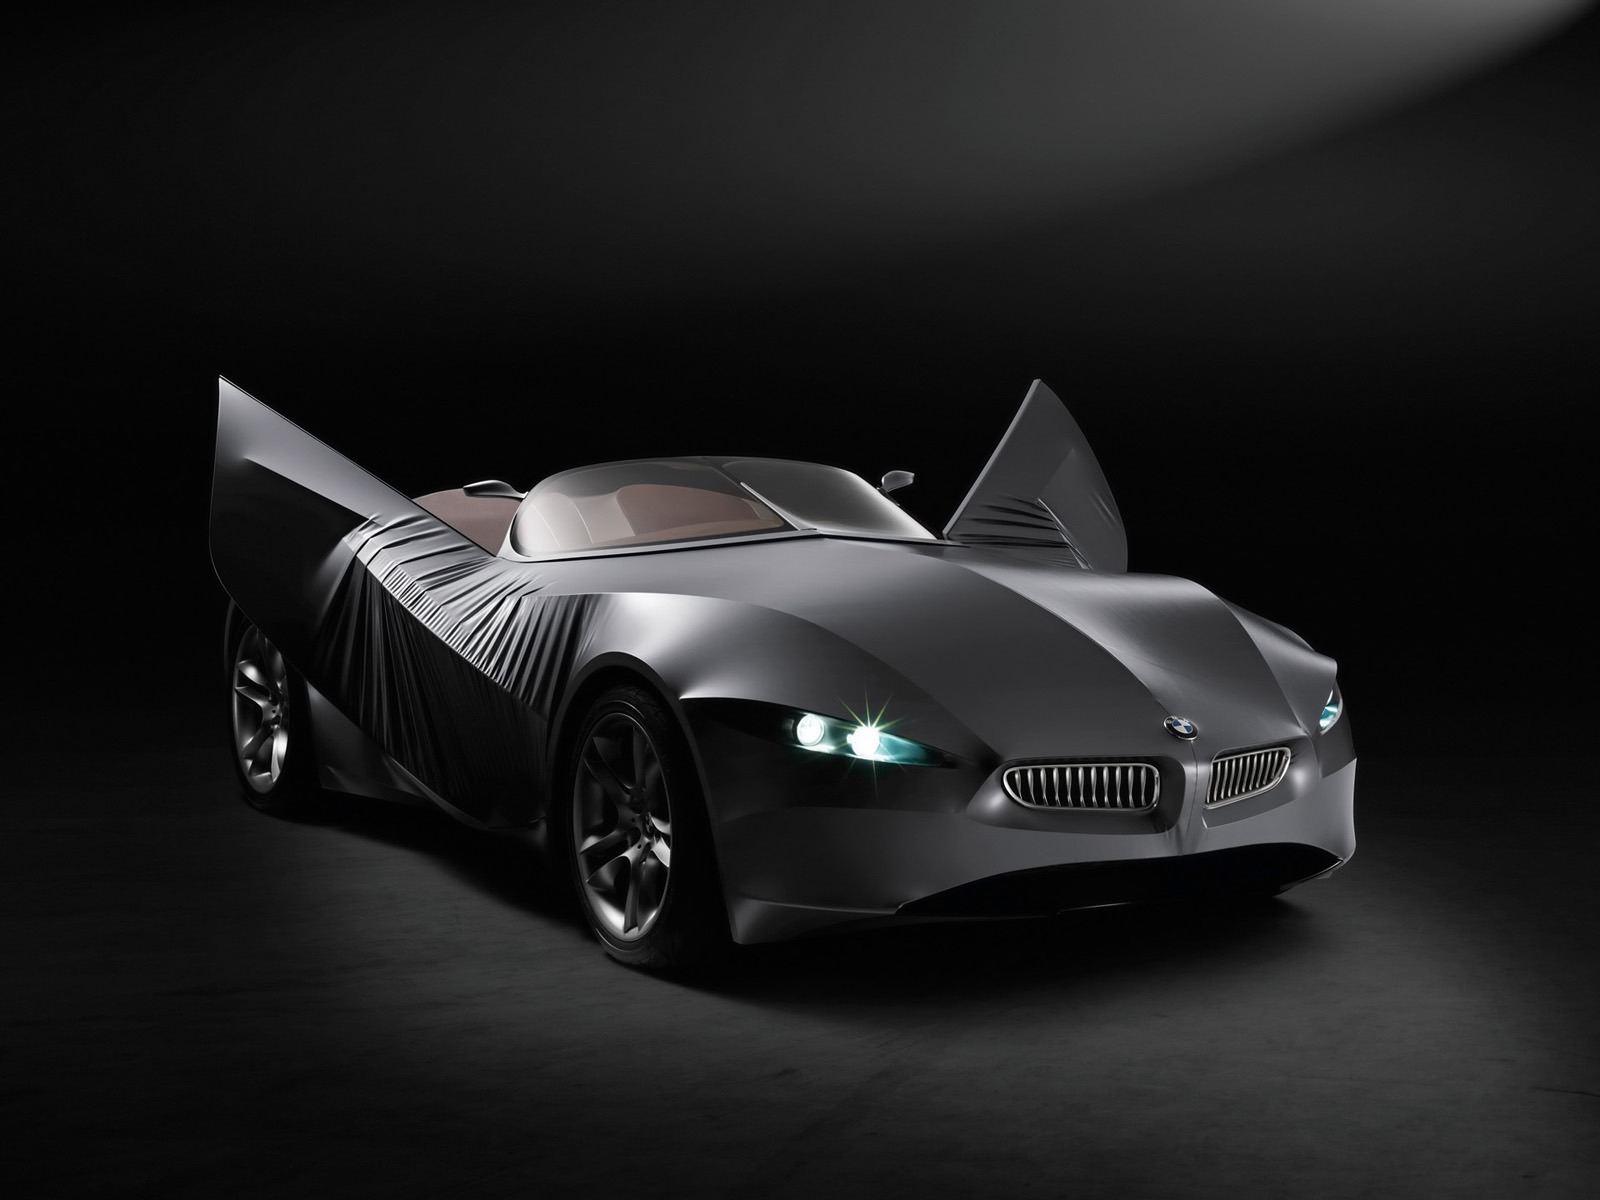 Captivating BMW Gina Concept Wallpaper BMW Cars